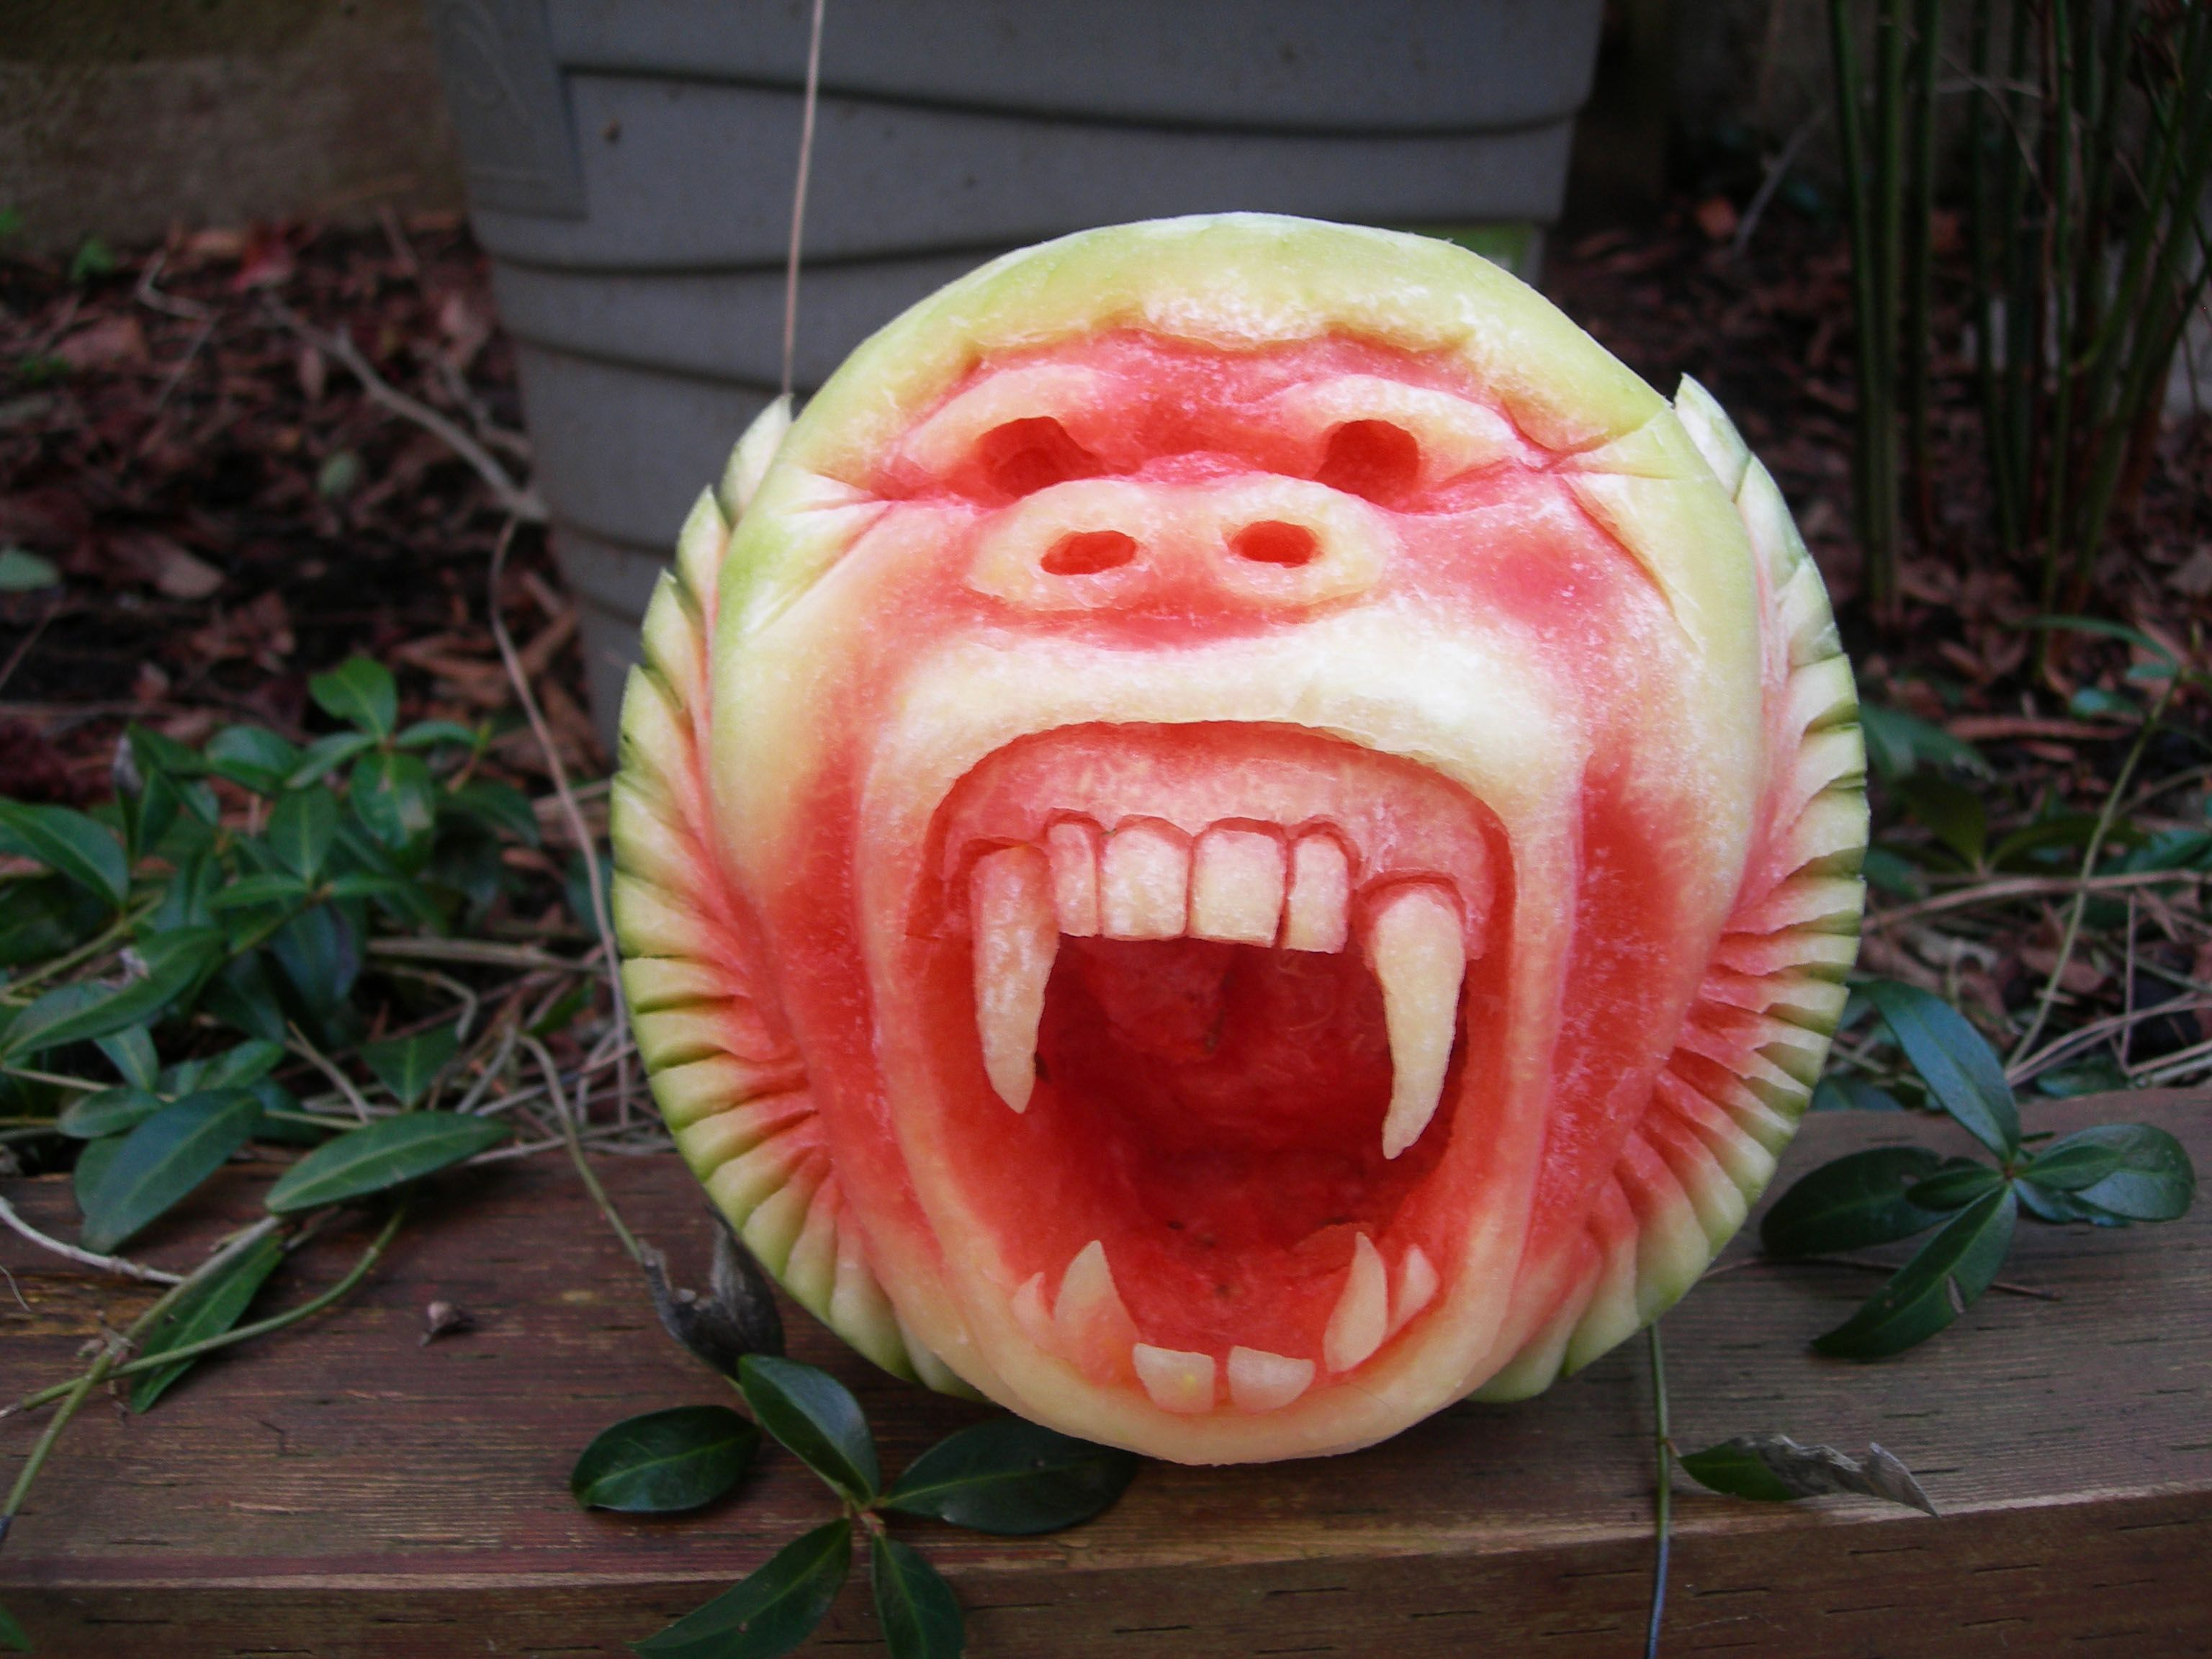 Impress Your Friends This Th With A Super Cool Gorilla Watermelon - Incredible sculptures carved watermelon